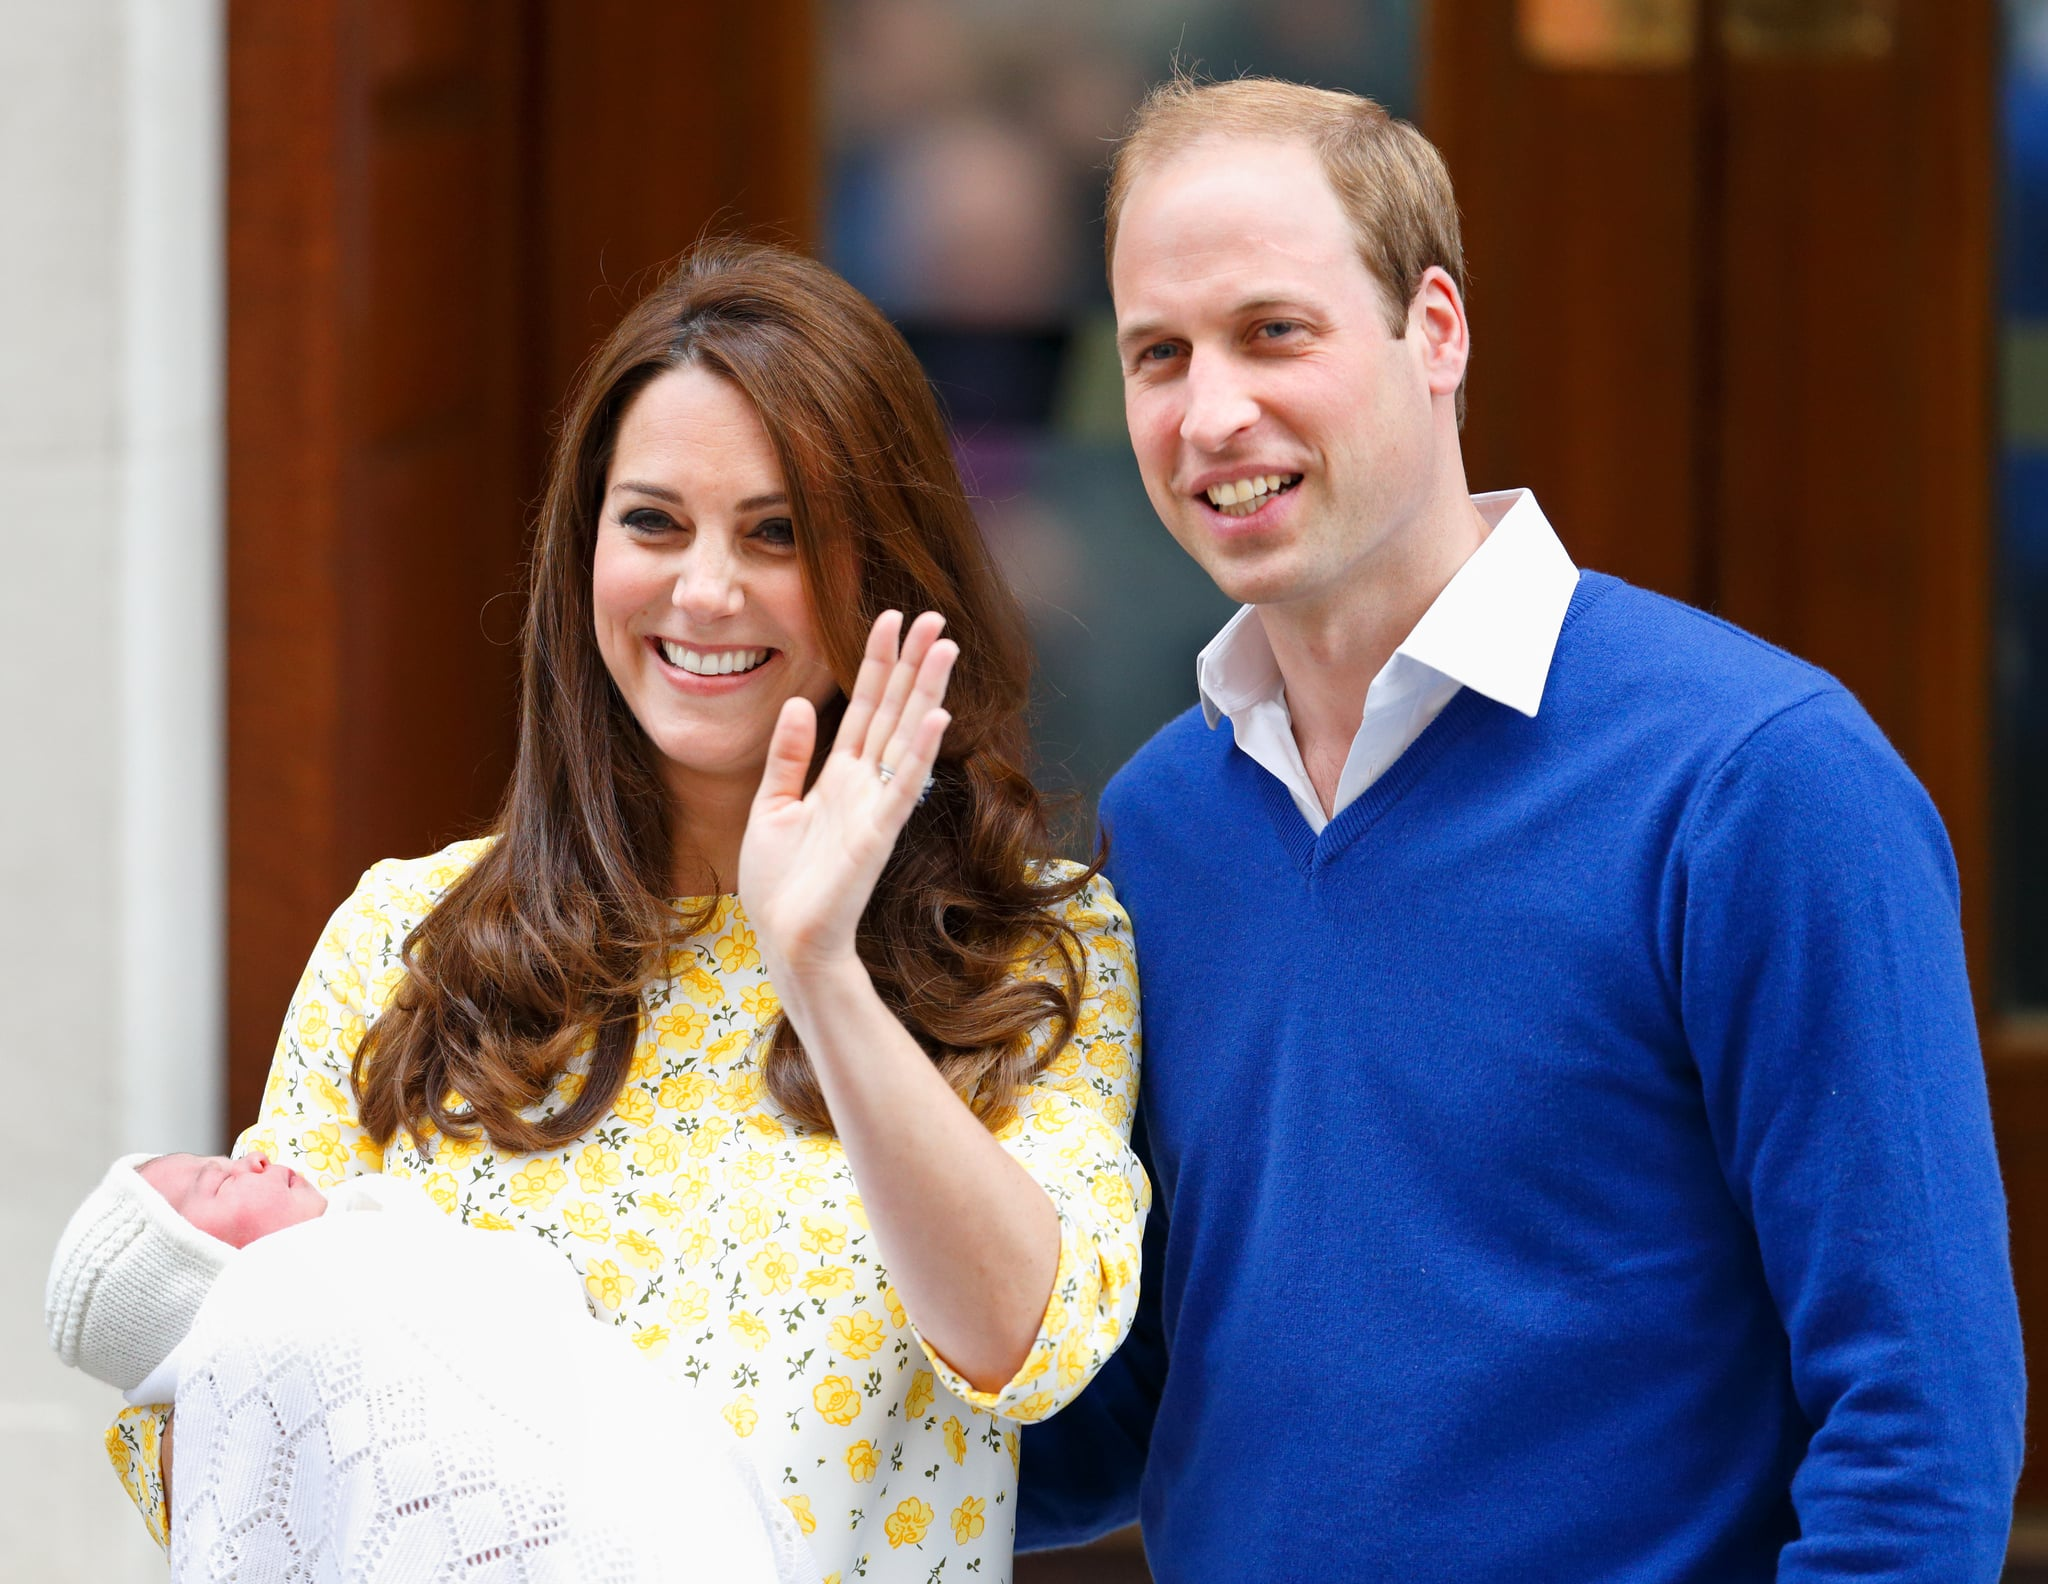 LONDON, UNITED KINGDOM - MAY 02: (EMBARGOED FOR PUBLICATION IN UK NEWSPAPERS UNTIL 48 HOURS AFTER CREATE DATE AND TIME) Catherine, Duchess of Cambridge and Prince William, Duke of Cambridge leave the Lindo Wing with their newborn daughter at St Mary's Hospital on May 2, 2015 in London, England. The Duchess safely delivered a daughter at 8:34am this morning, weighing 8lbs 3 oz who will be fourth in line to the throne. (Photo by Max Mumby/Indigo/Getty Images)